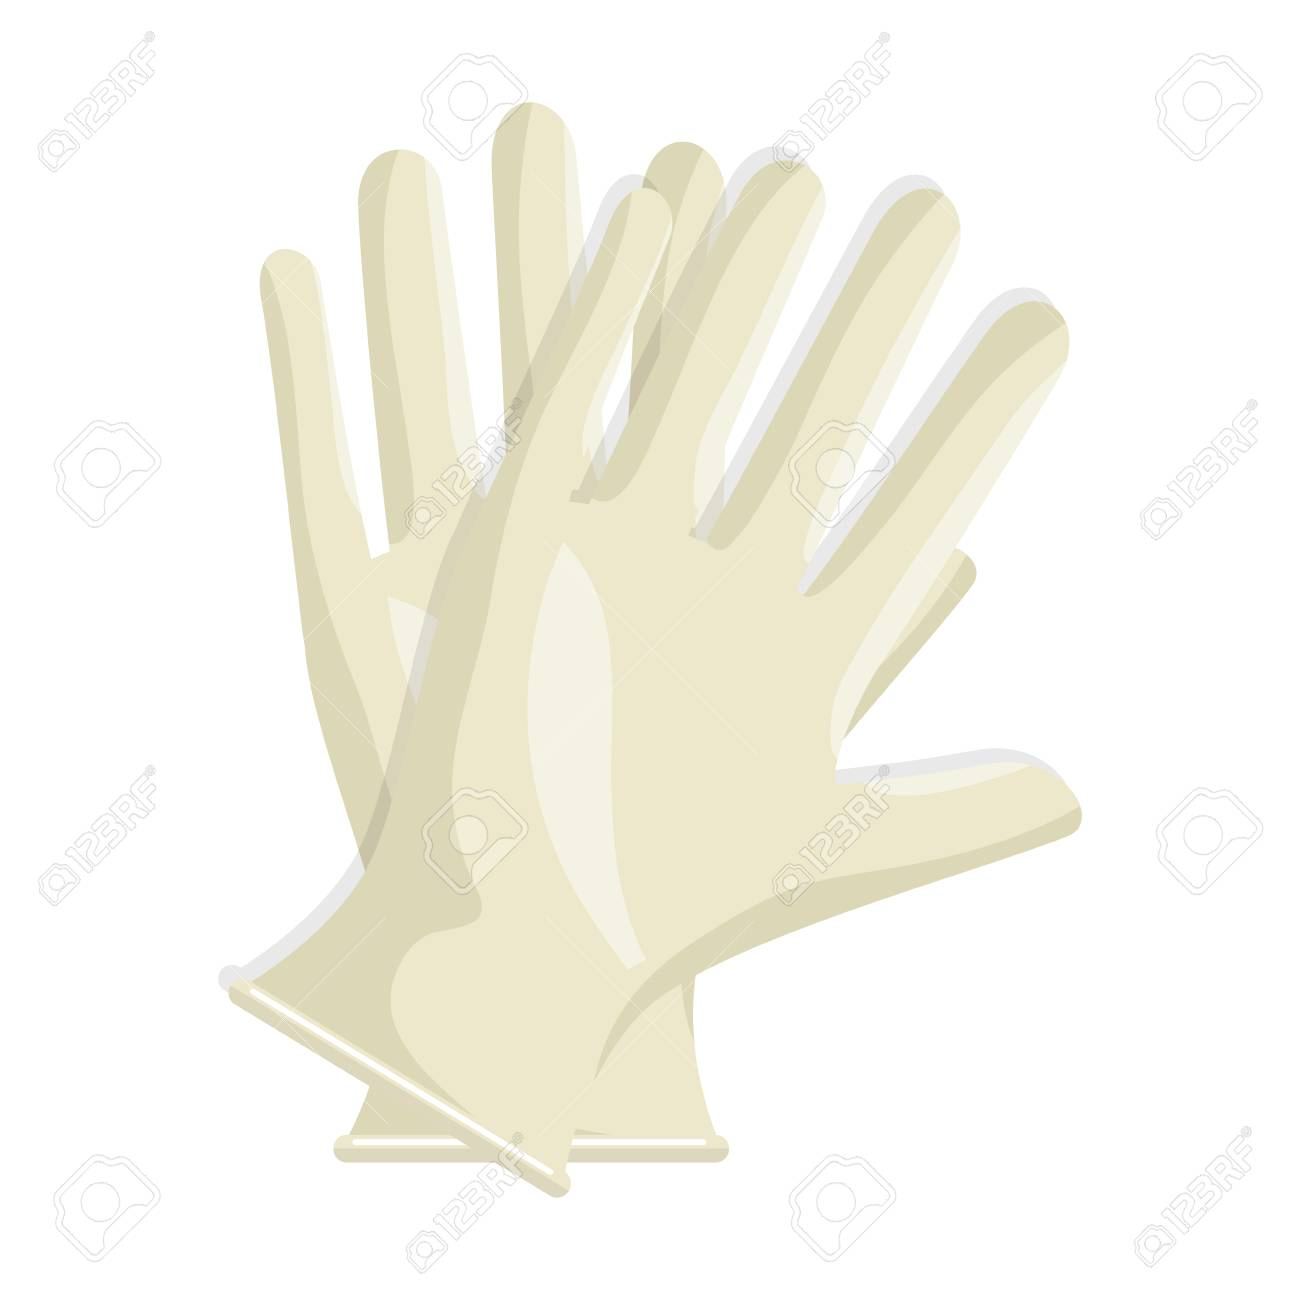 Surgical gloves isolated icon vector illustration design - 95303254